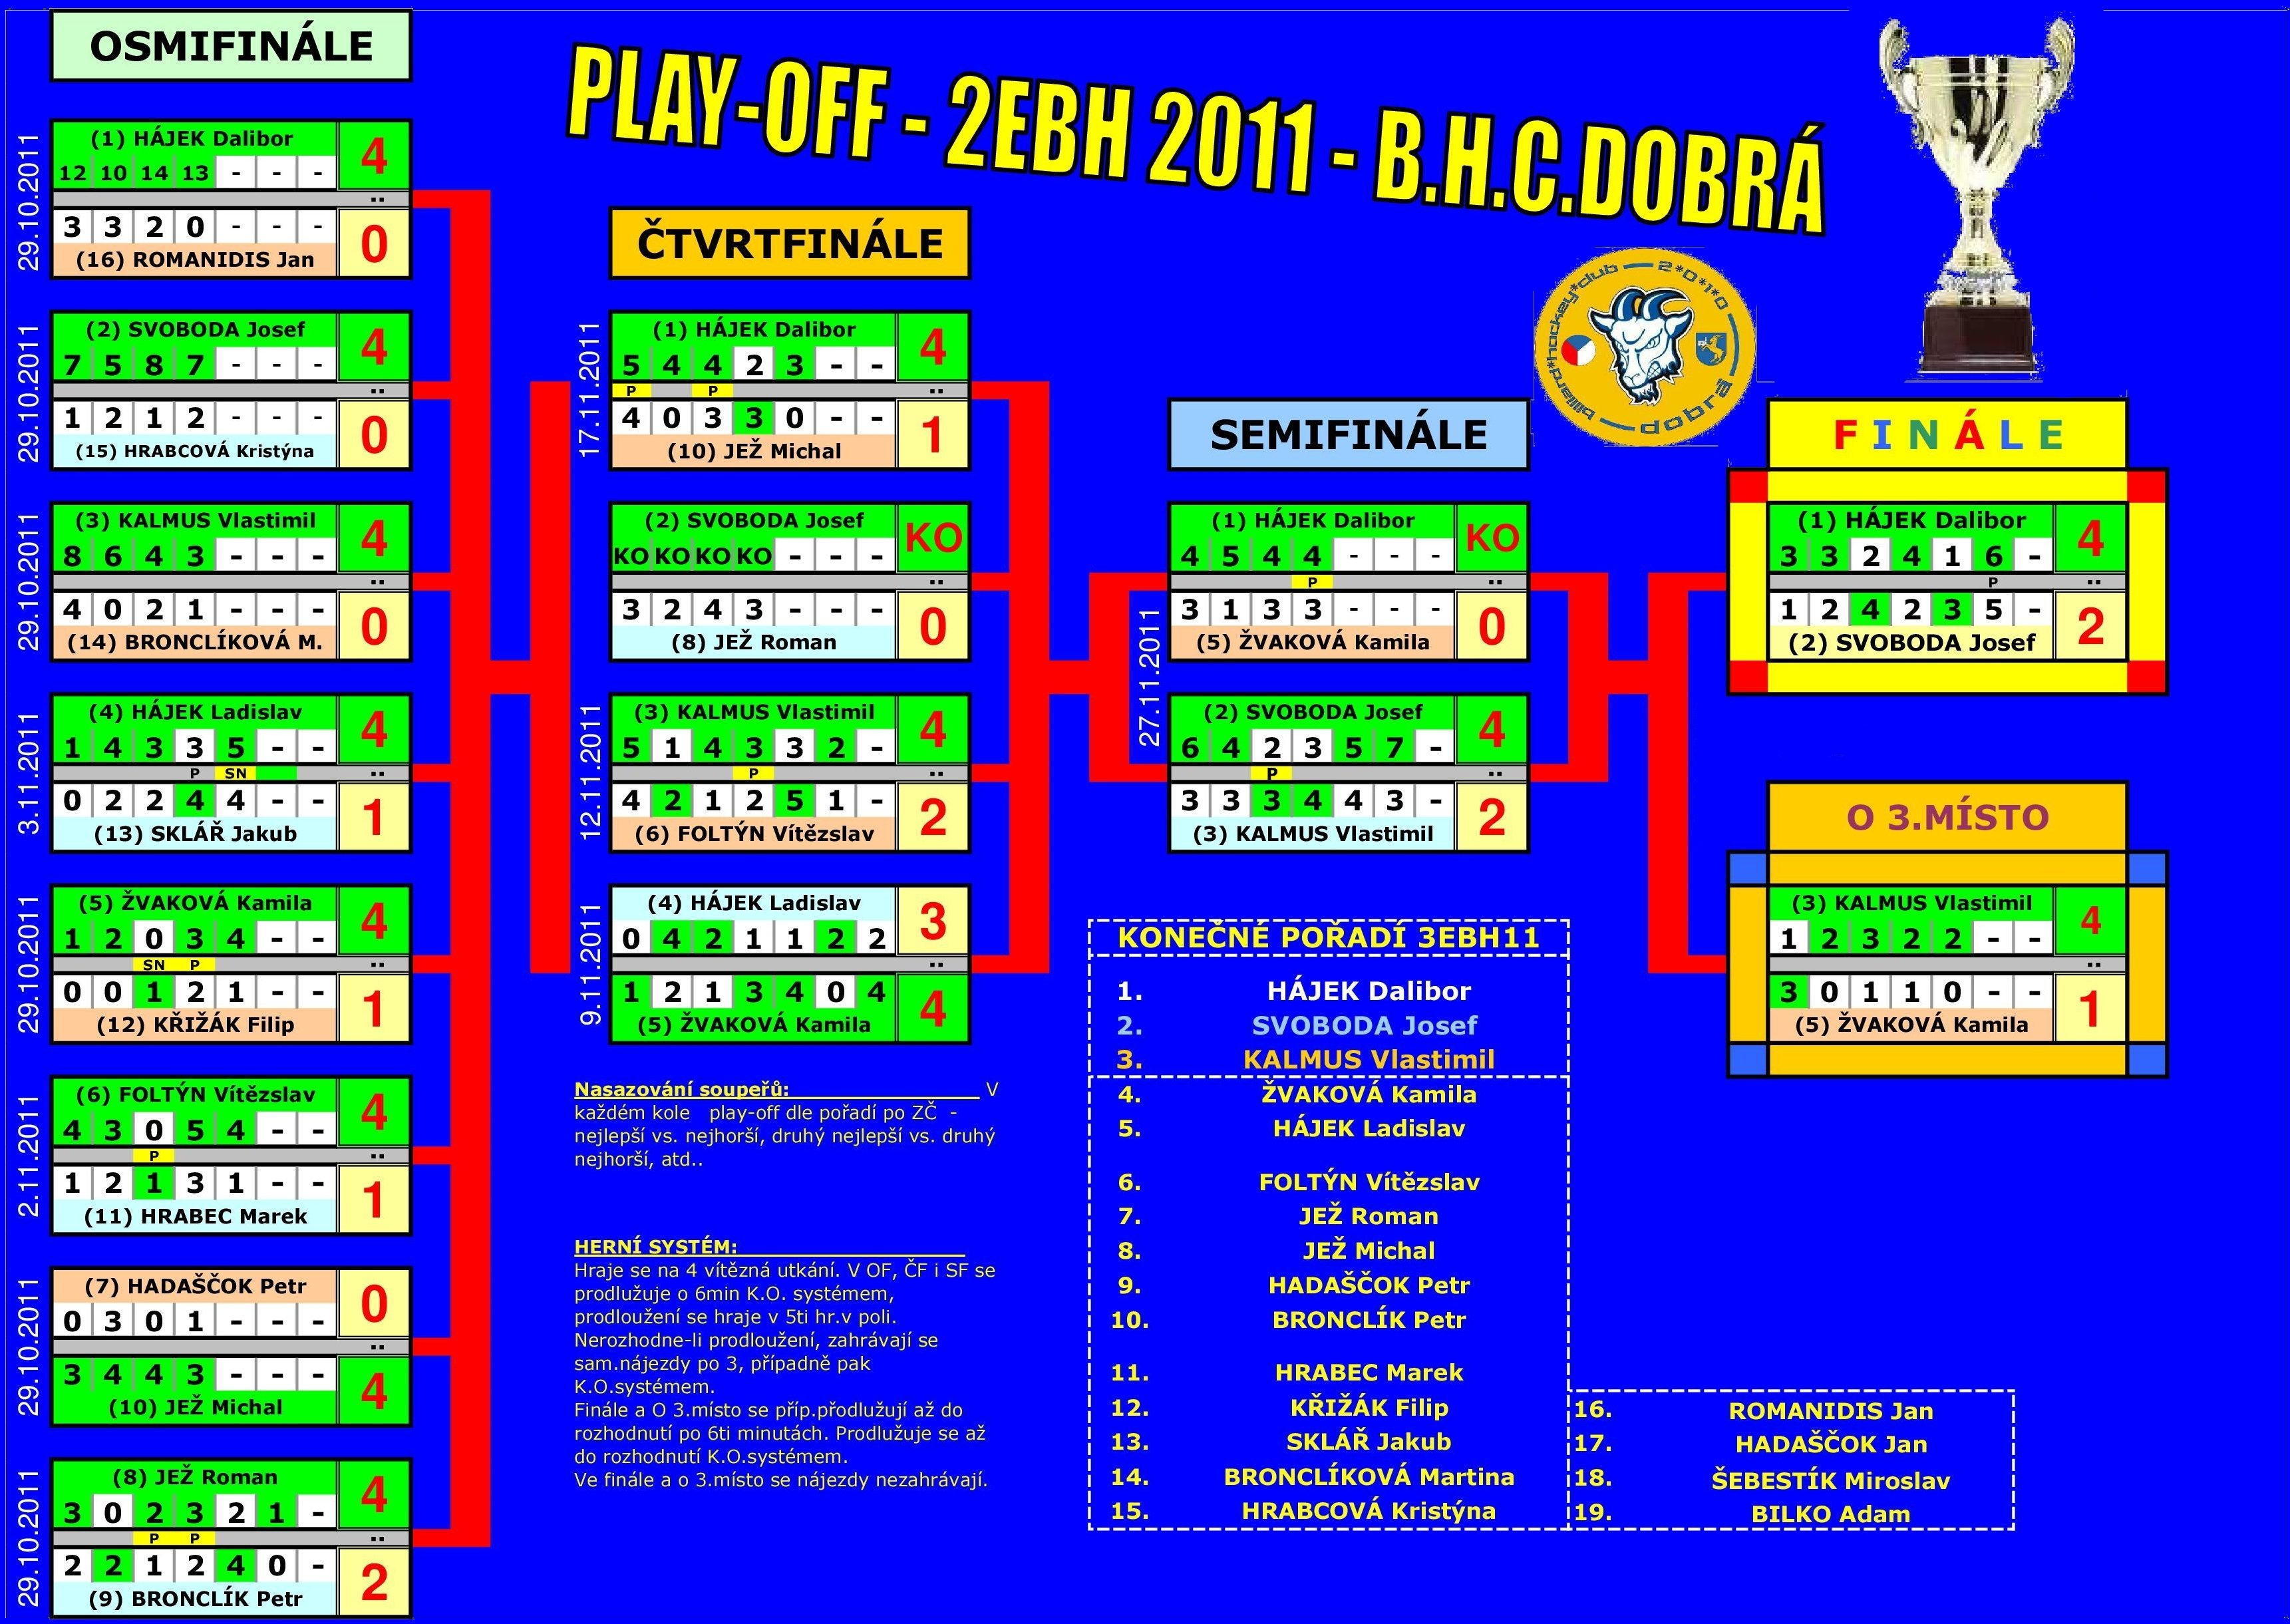 2EBH11 play-off